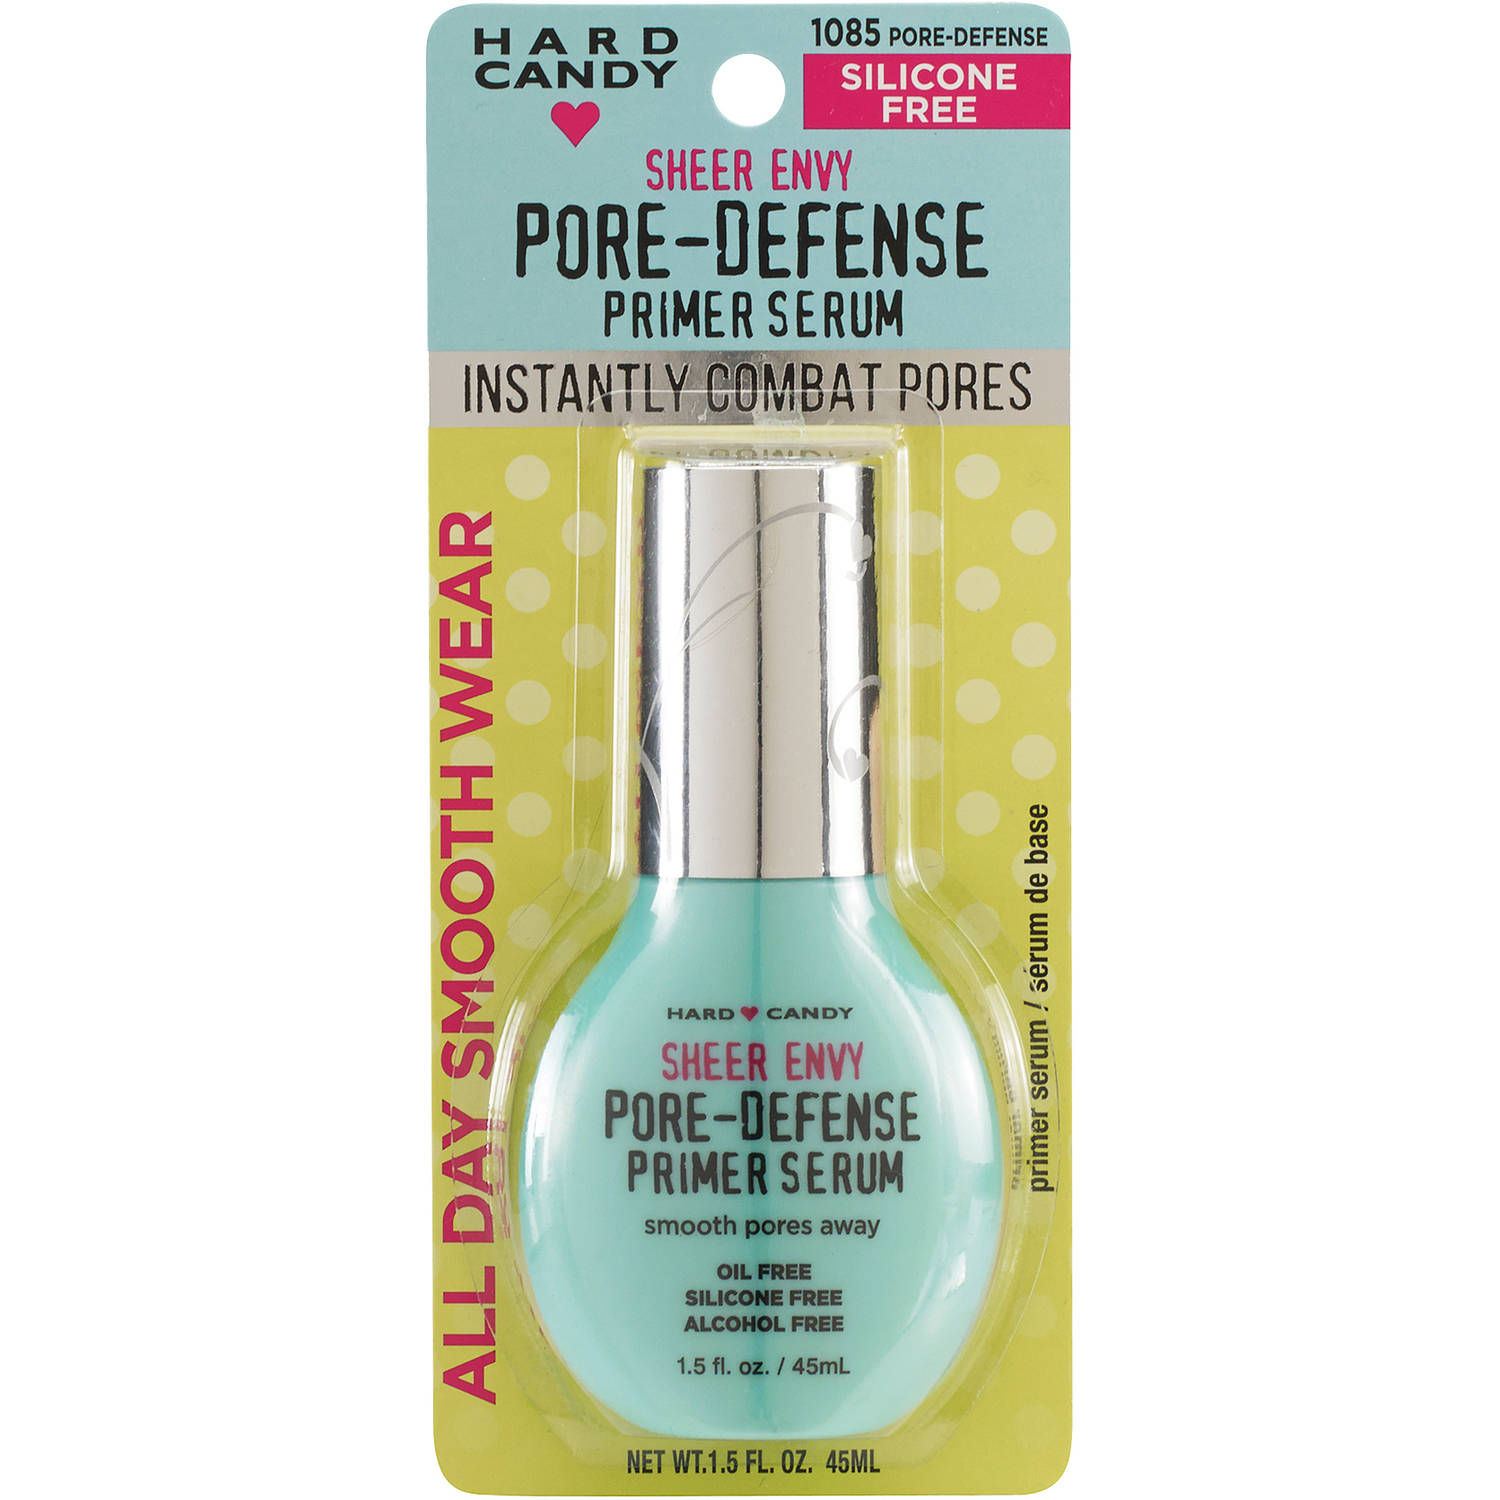 Hard Candy Sheer Envy Pore-Defense Primer Serum, 1.5 fl oz